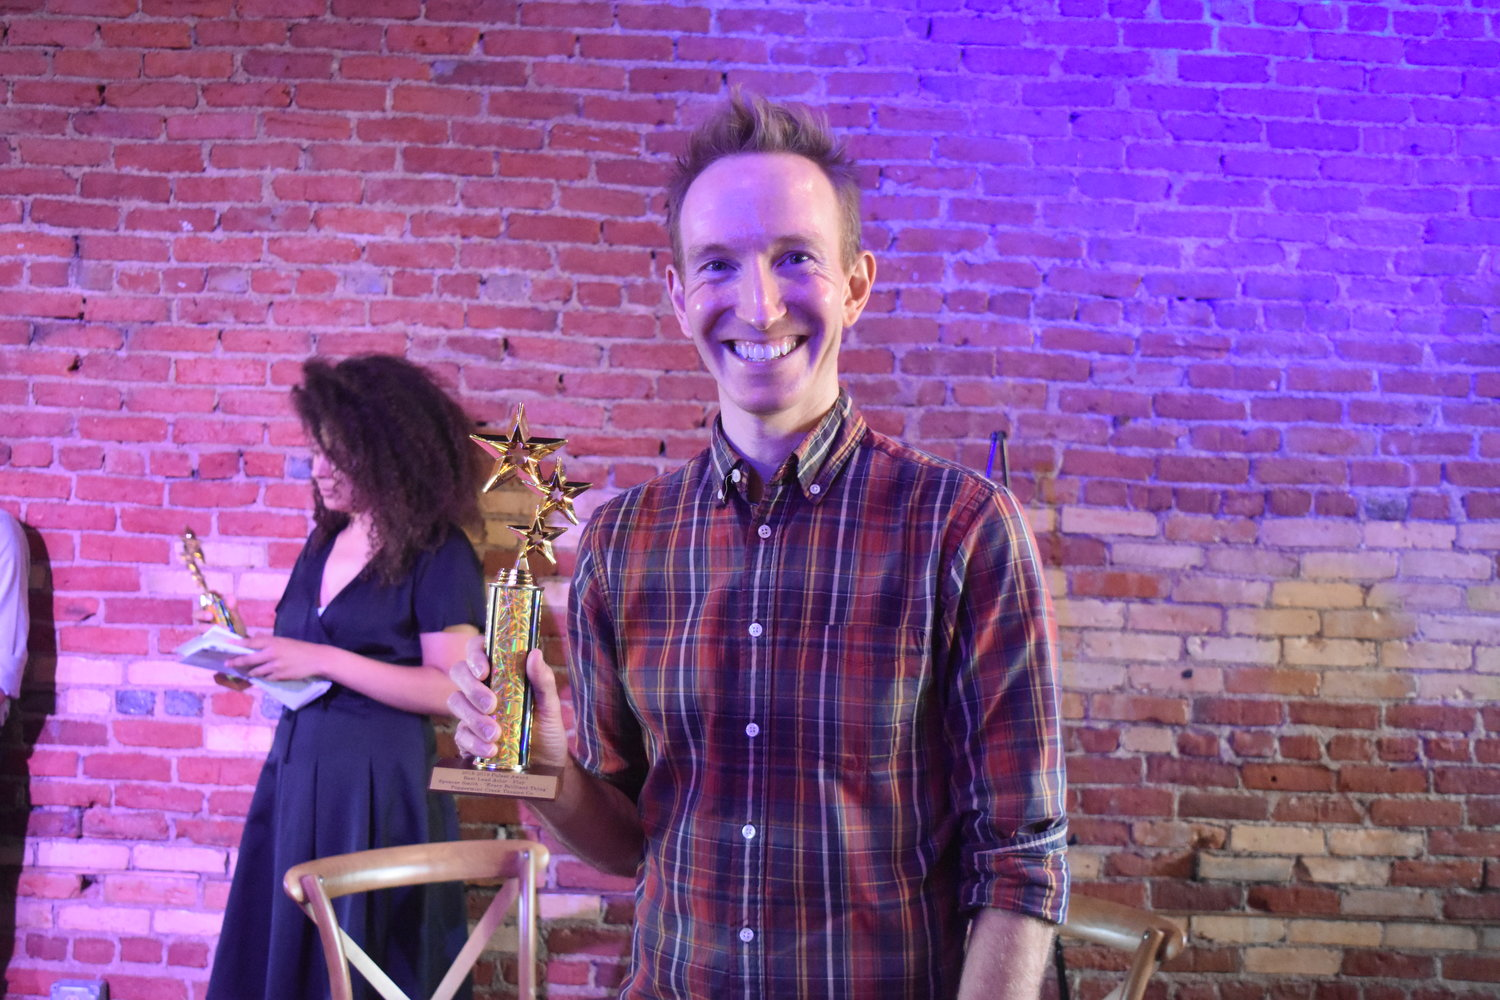 Chad Swan-Badgero accepted the award for Best Lead Actor in a Play for Spencer Smith.